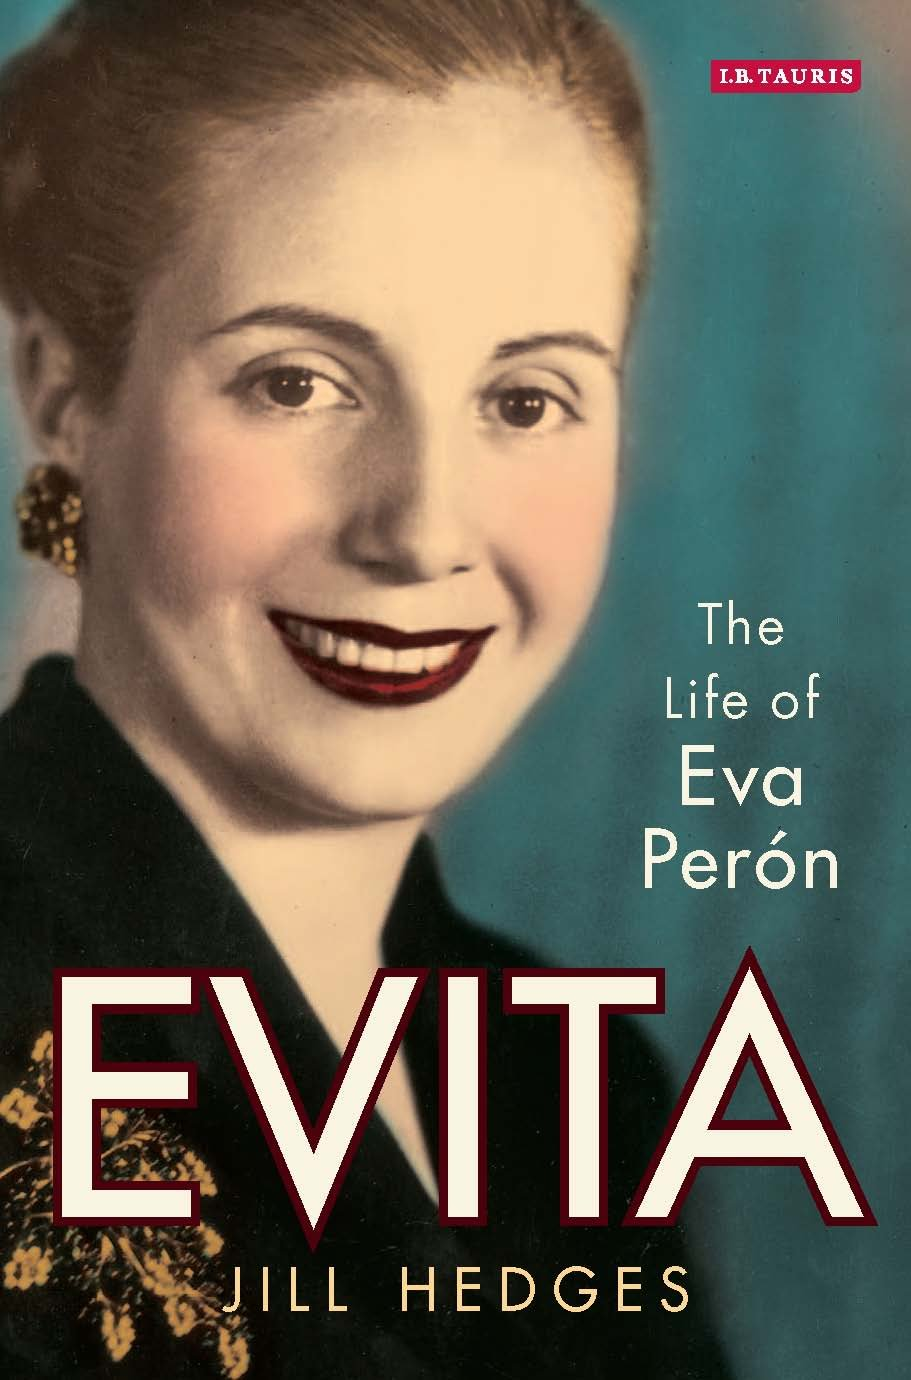 Evita: The Life of Eva Peron